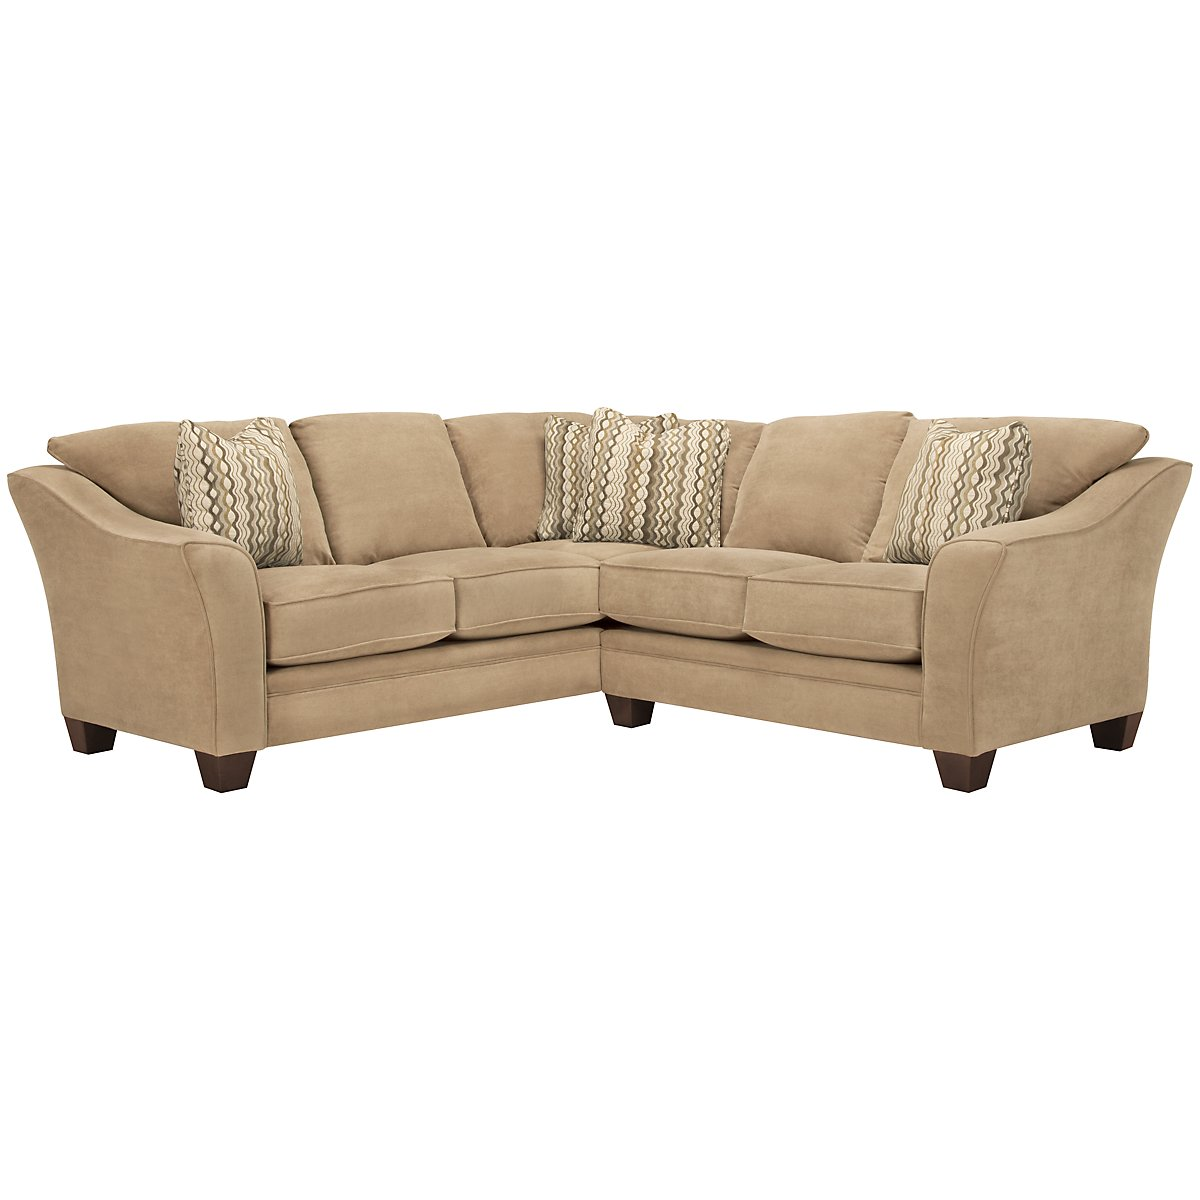 Grant2 Light Brown Microfiber Two-Arm Sectional